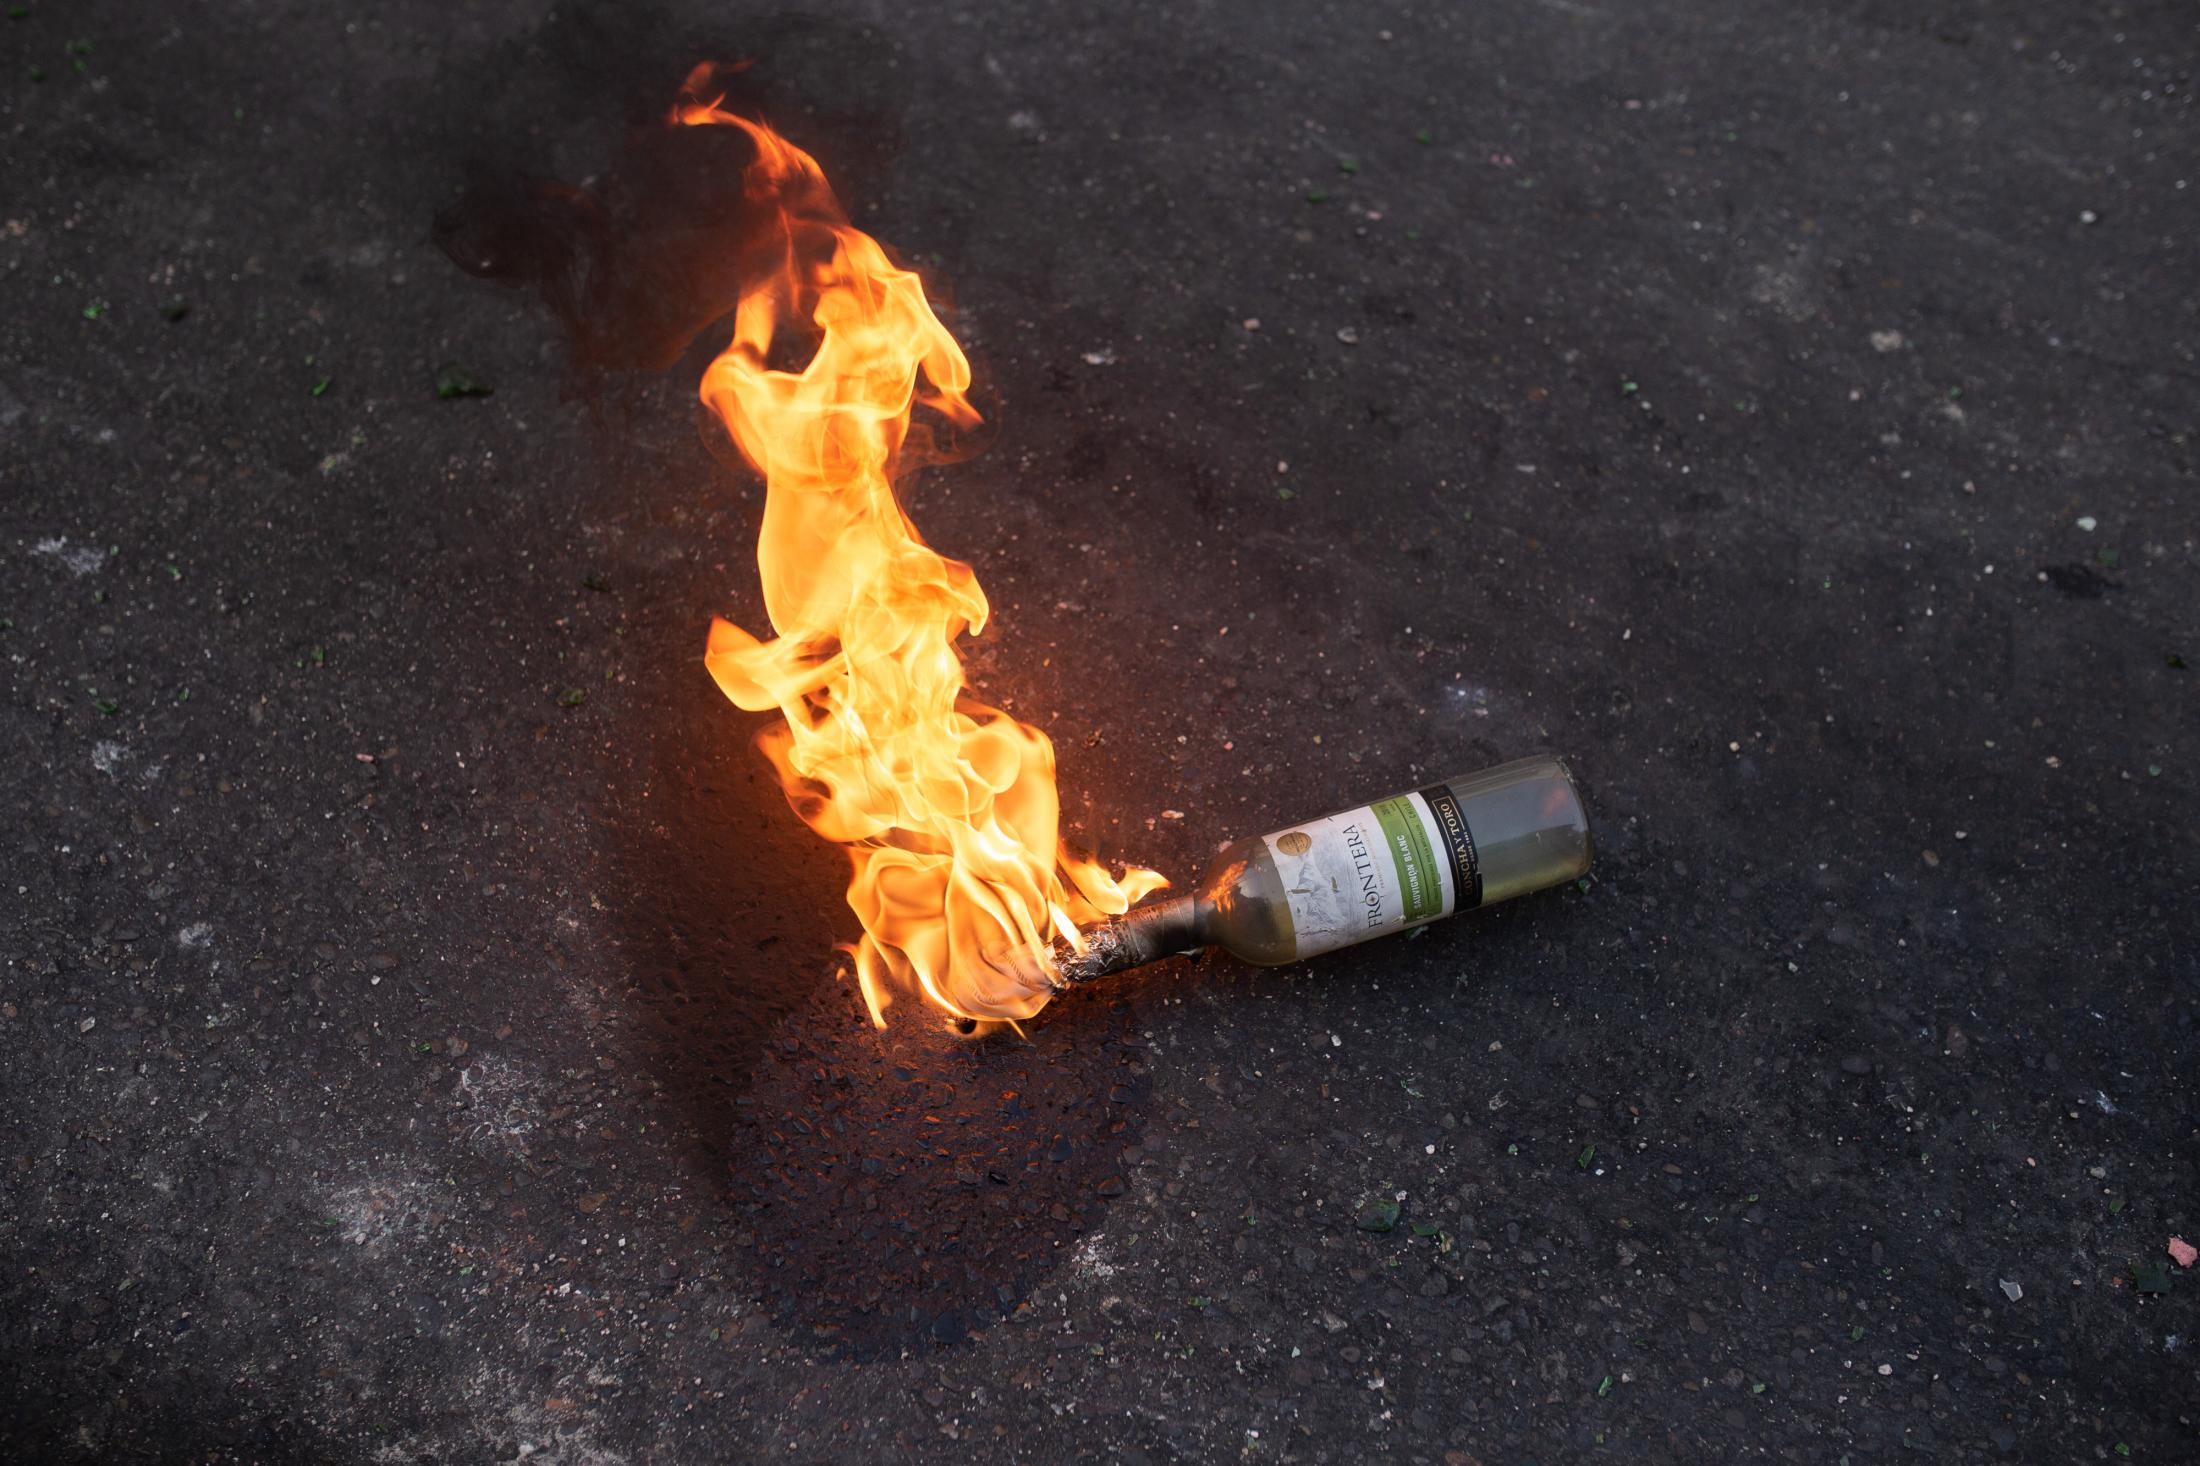 January 19, 2020. A Molotov cocktail burns on the ground after being thrown by protesters during a day of protest in Valparaíso, within the context of the social outbreak.